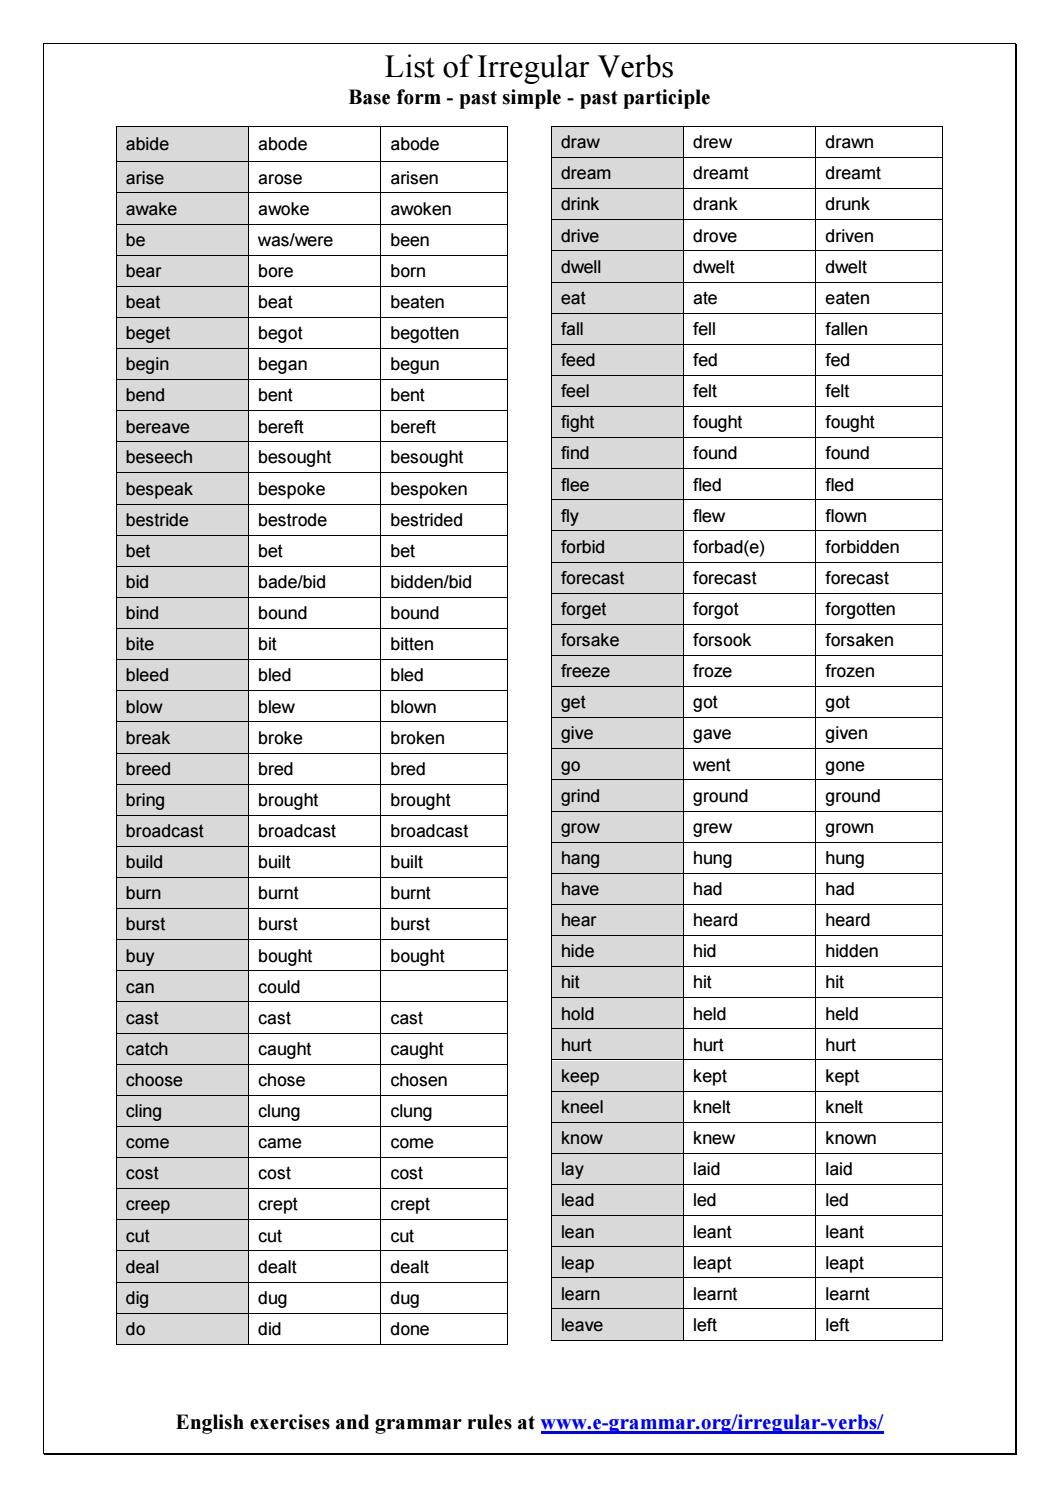 List Of Irregular Verbs 1 By Mario Samayoa Issuu